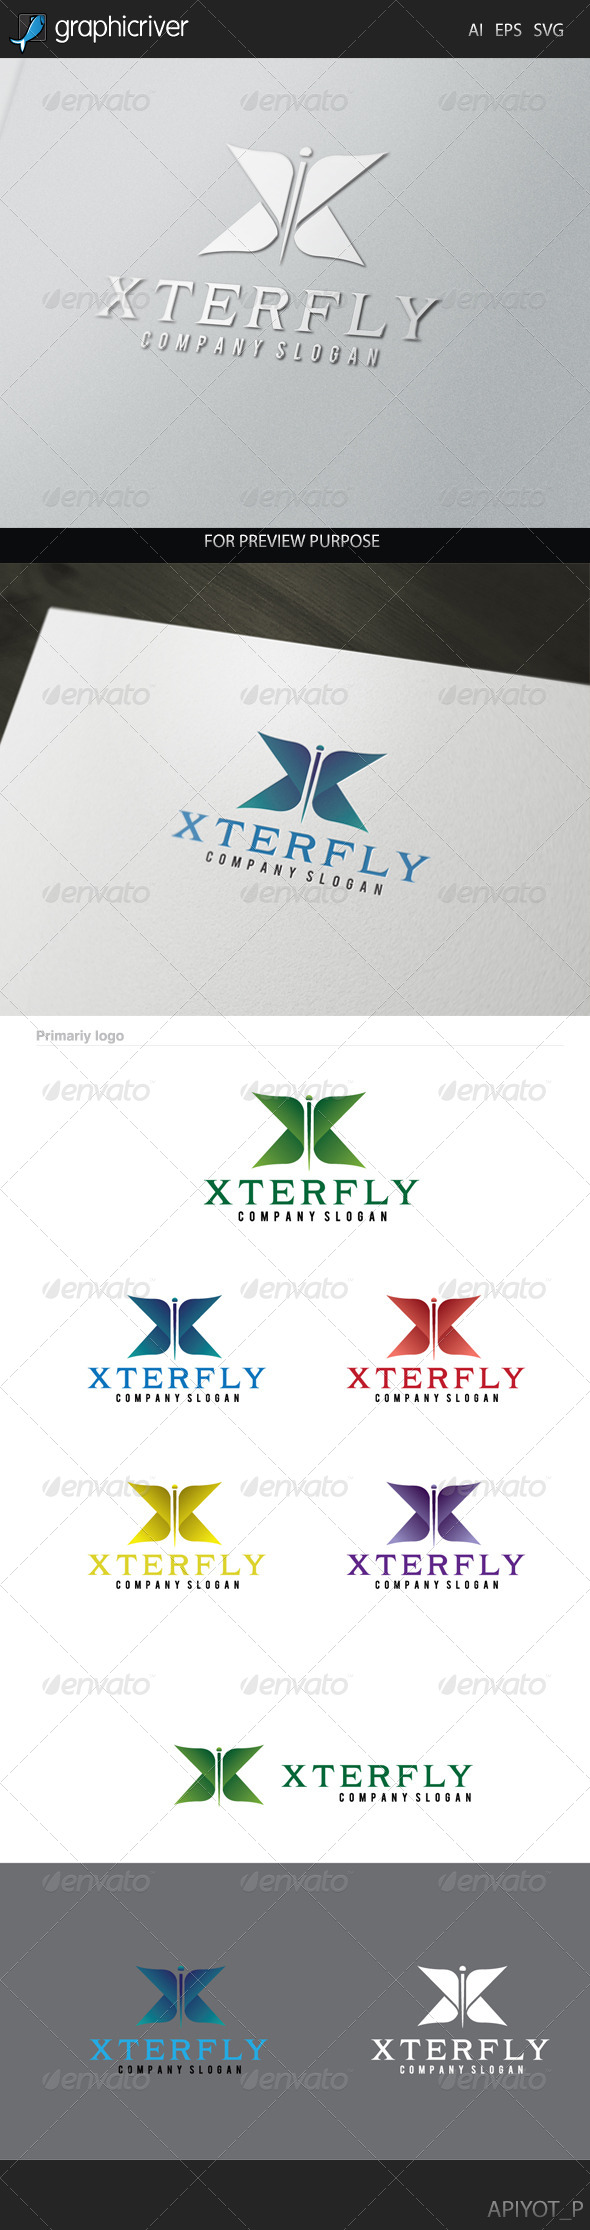 GraphicRiver Xterfly Logo 8215299